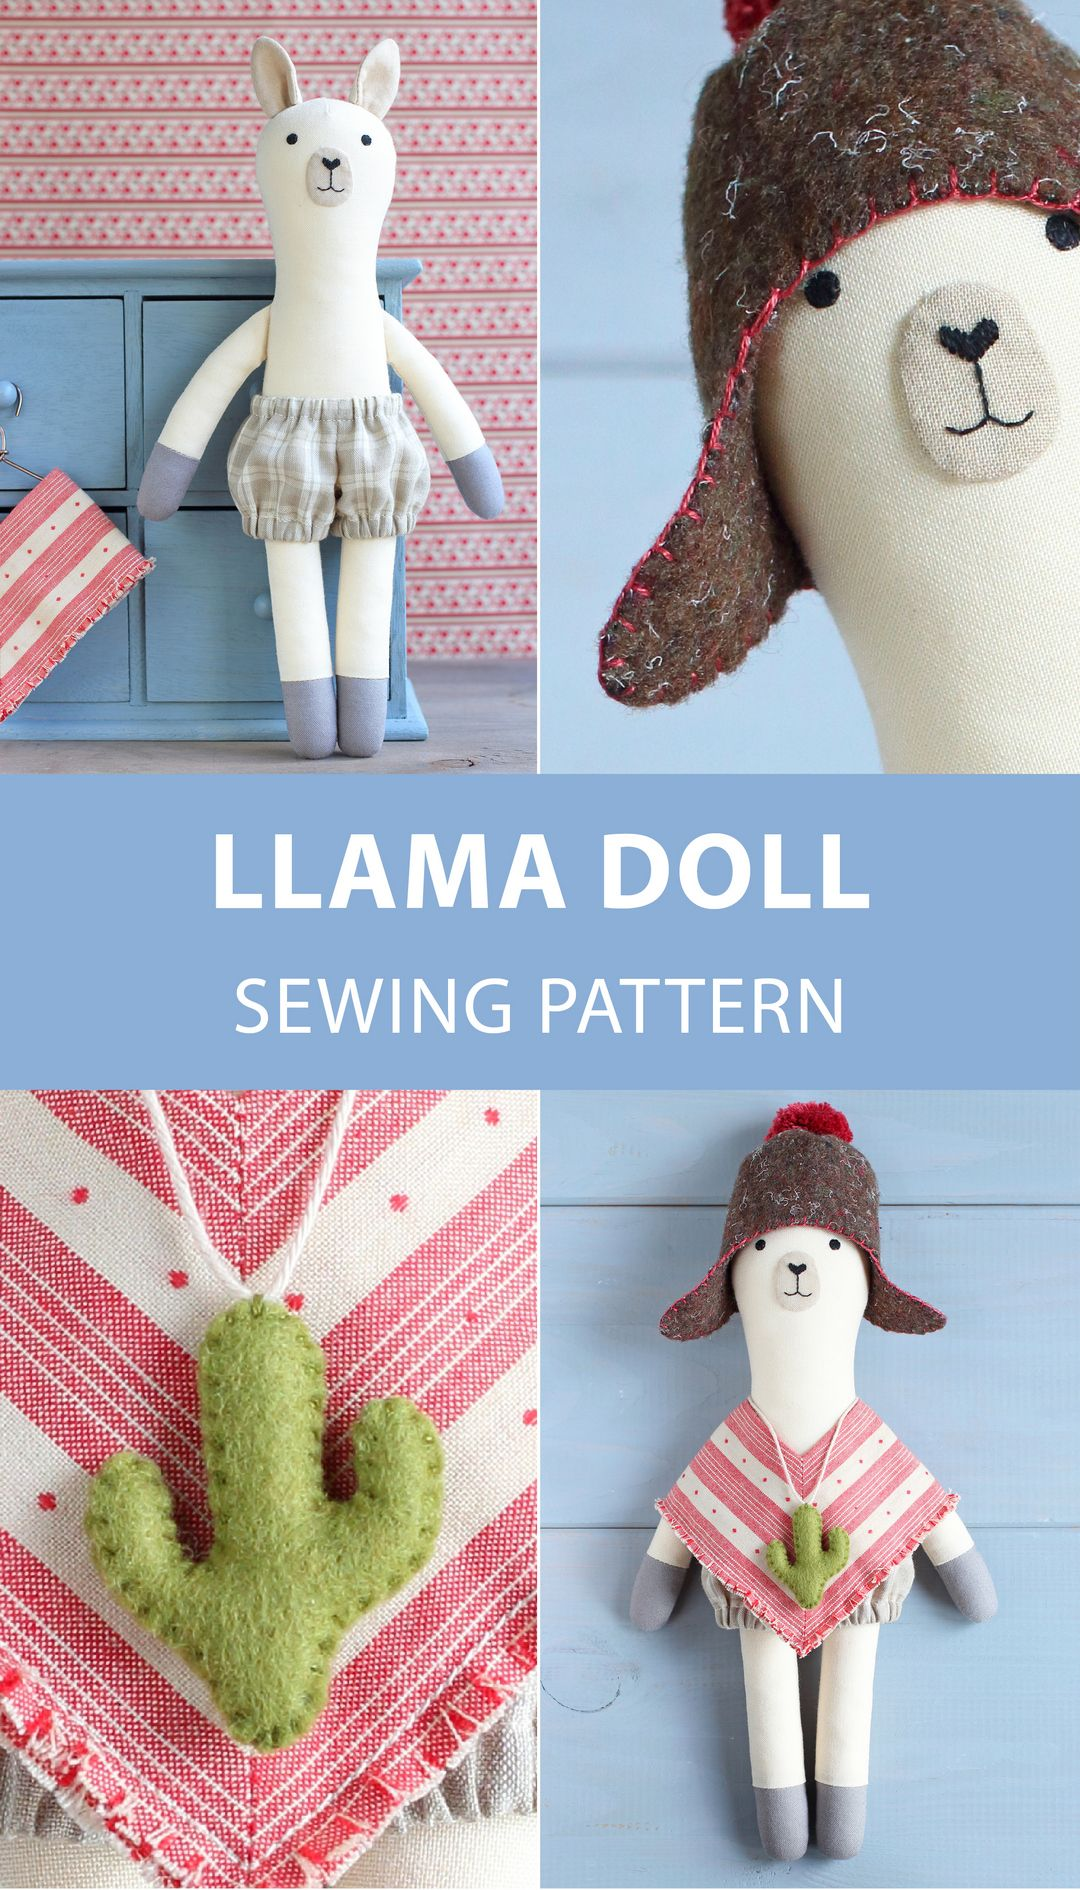 PDF Llama (Alpaca) Sewing Pattern & Tutorial — DIY Animal Rag Doll, Soft / Stuffed Toy, Llama Doll with Clothes, Nursery Decor #stuffedanimals